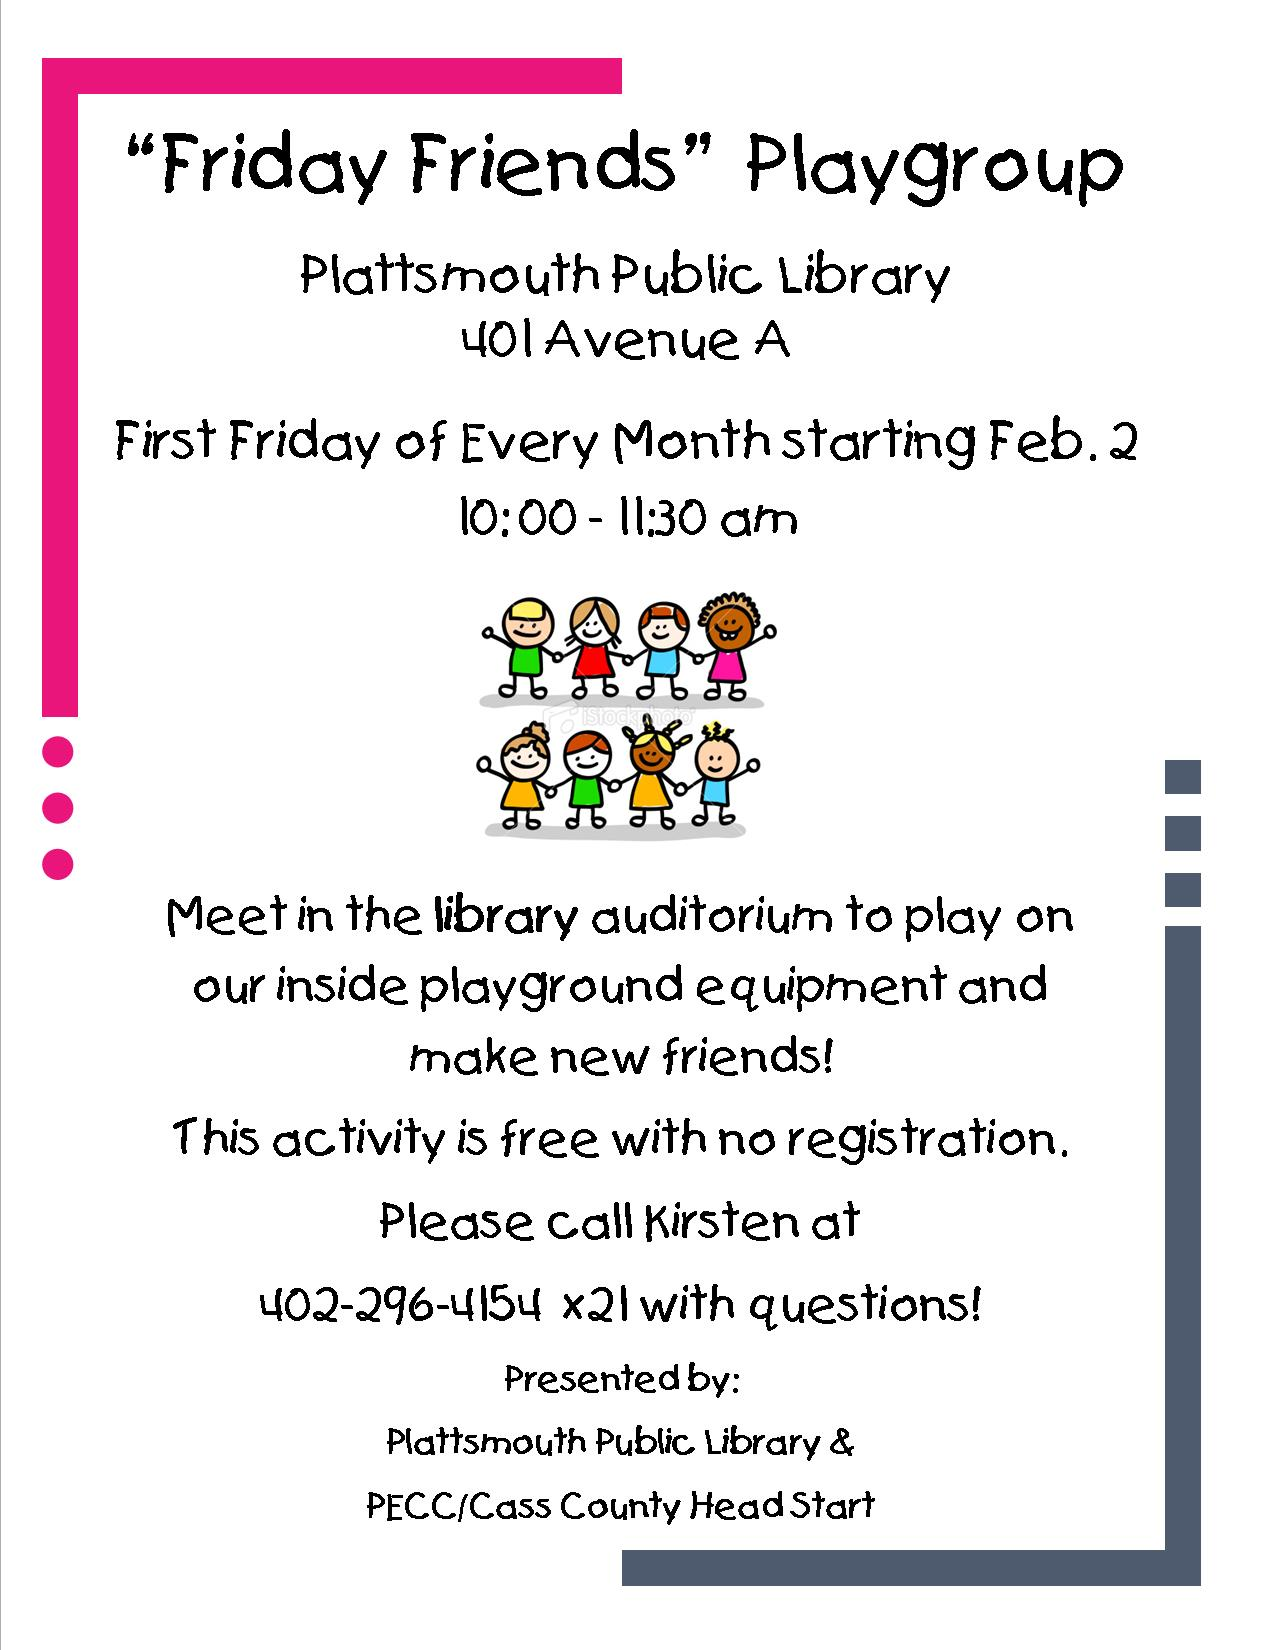 Friday Friends Playgroup Poster3235